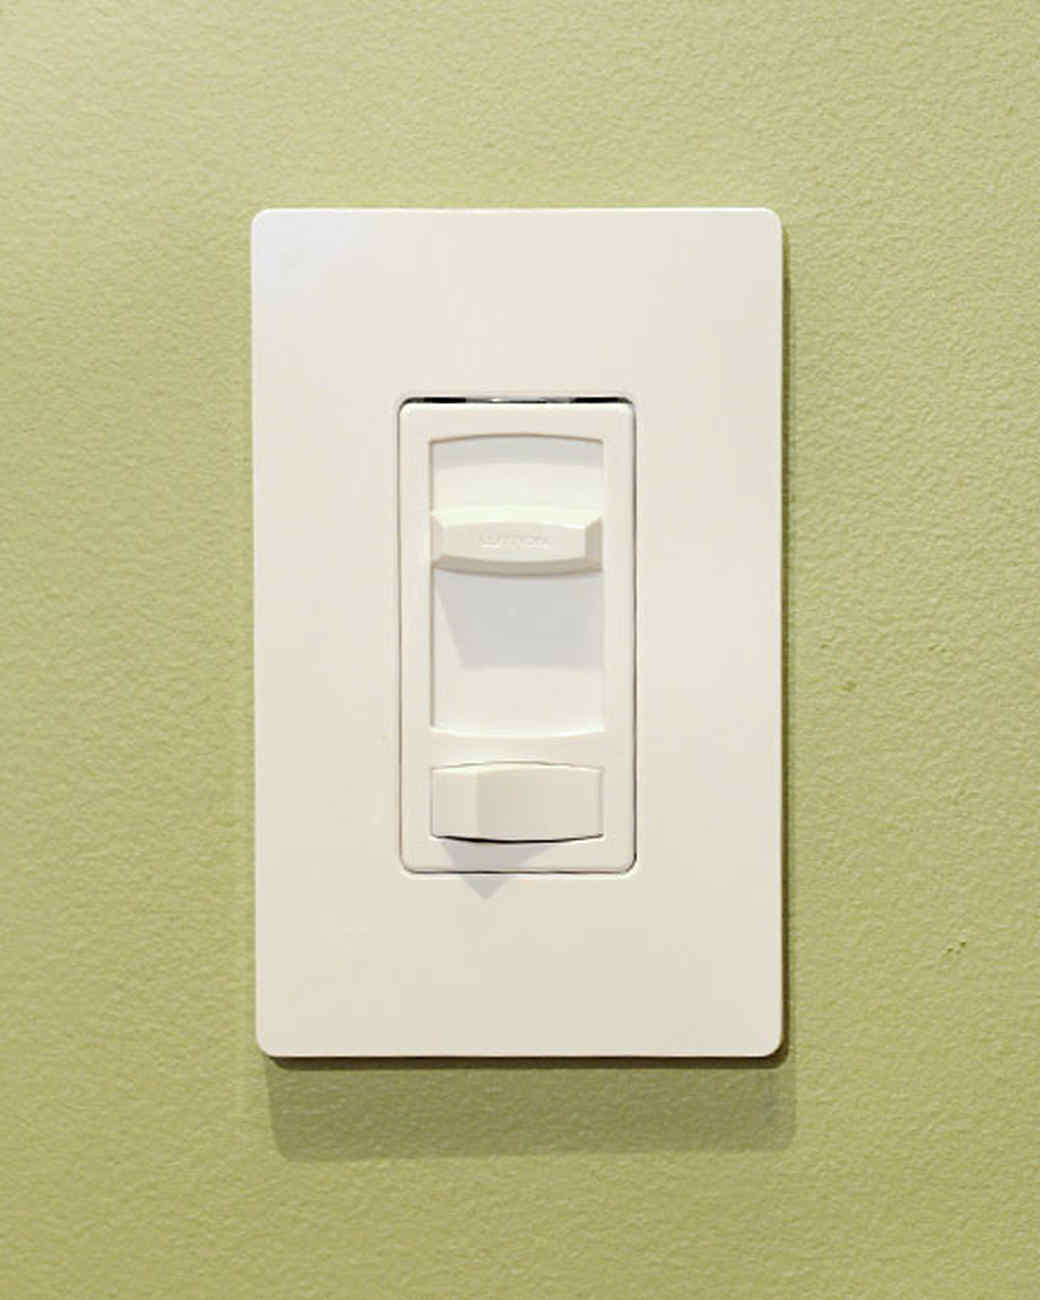 Installing a Dimmer